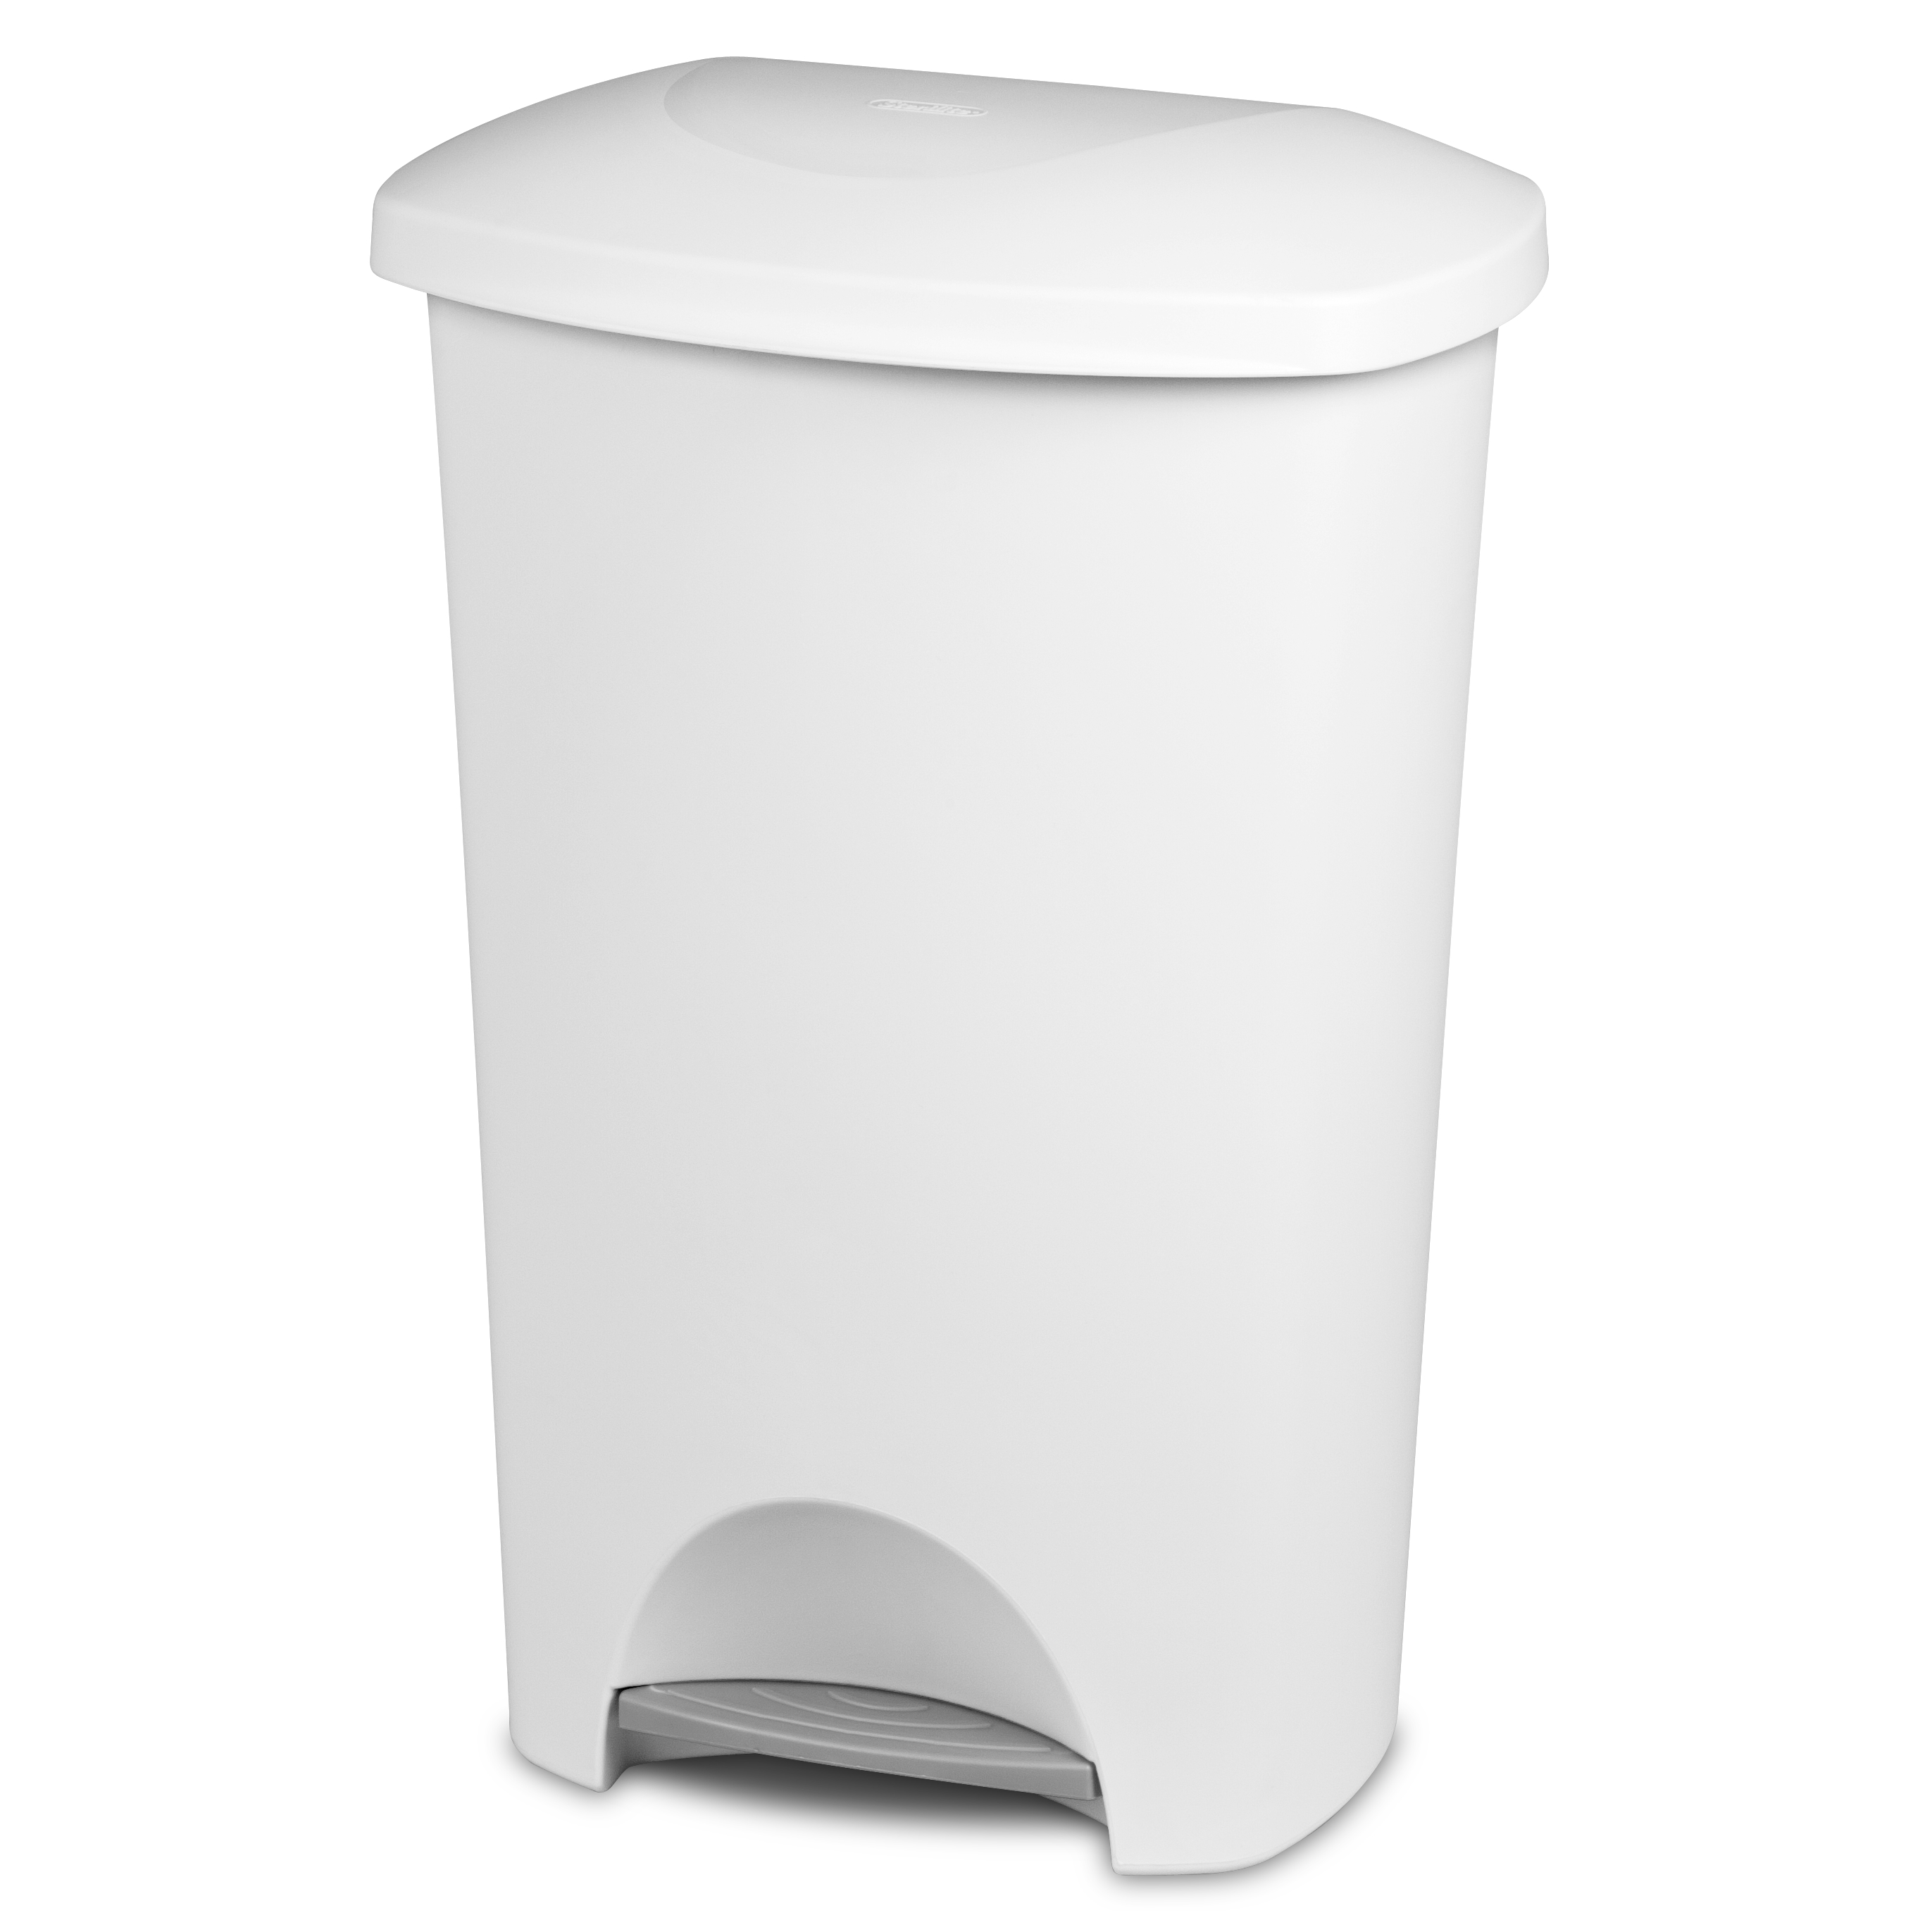 White Sterilite StepOn Wastebasket 1096 Trash Can With Lid 11 Gallon Hands Free